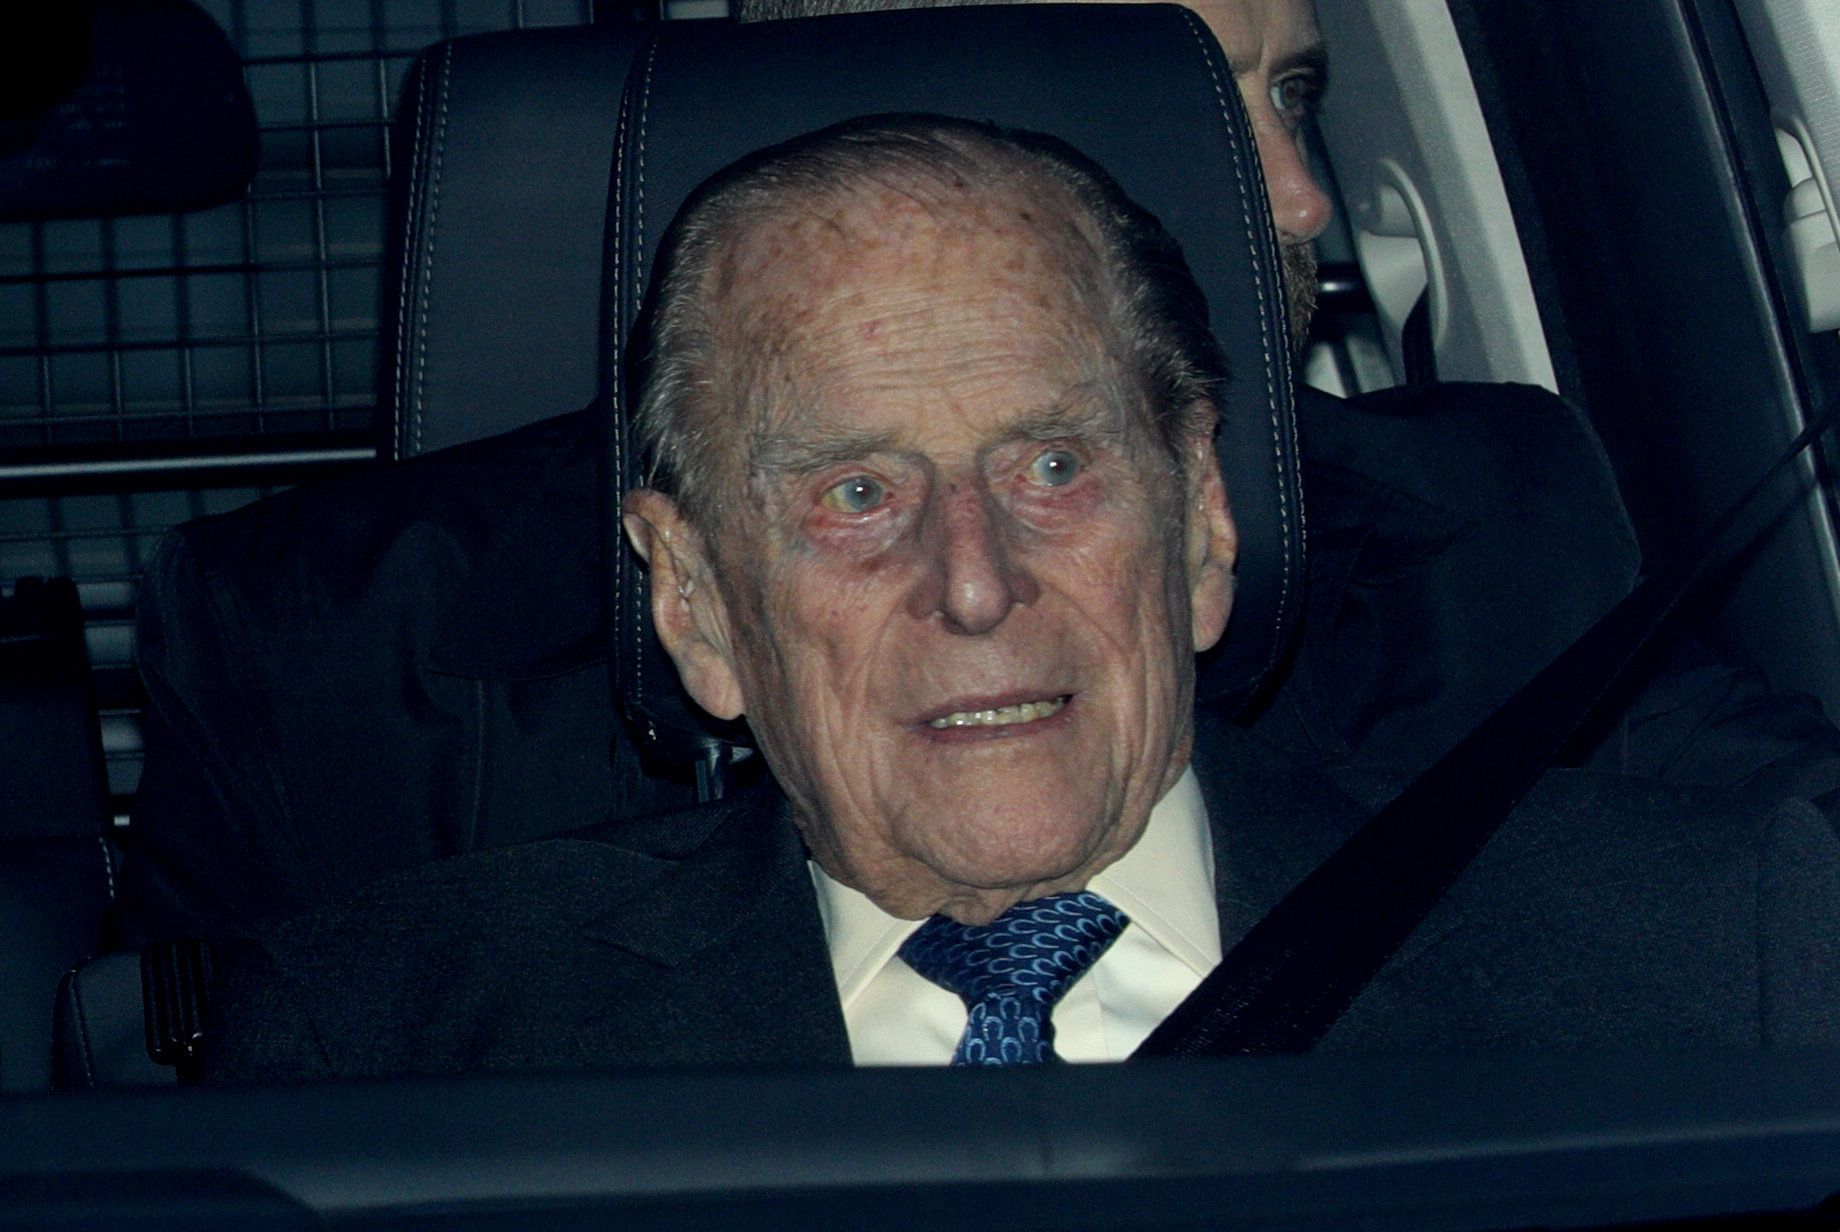 Prince Philip was last seen leaving the Queen's annual Christmas lunch at Buckingham Palace last month.